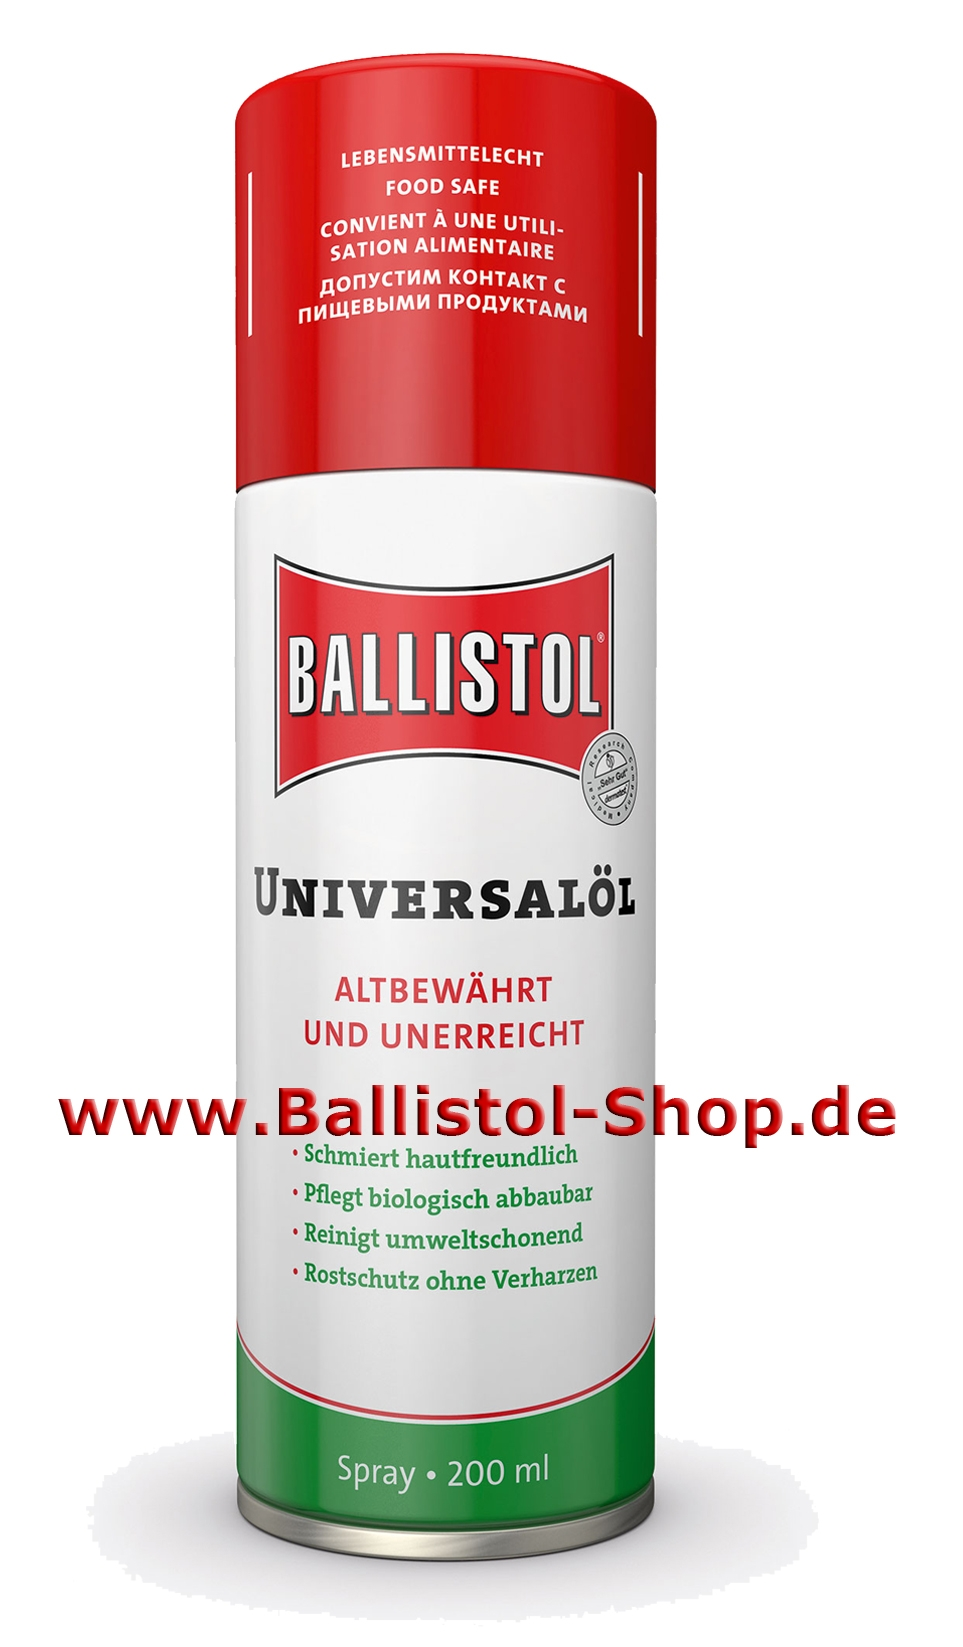 ballistol universal l seit 1904 bew hrt. Black Bedroom Furniture Sets. Home Design Ideas